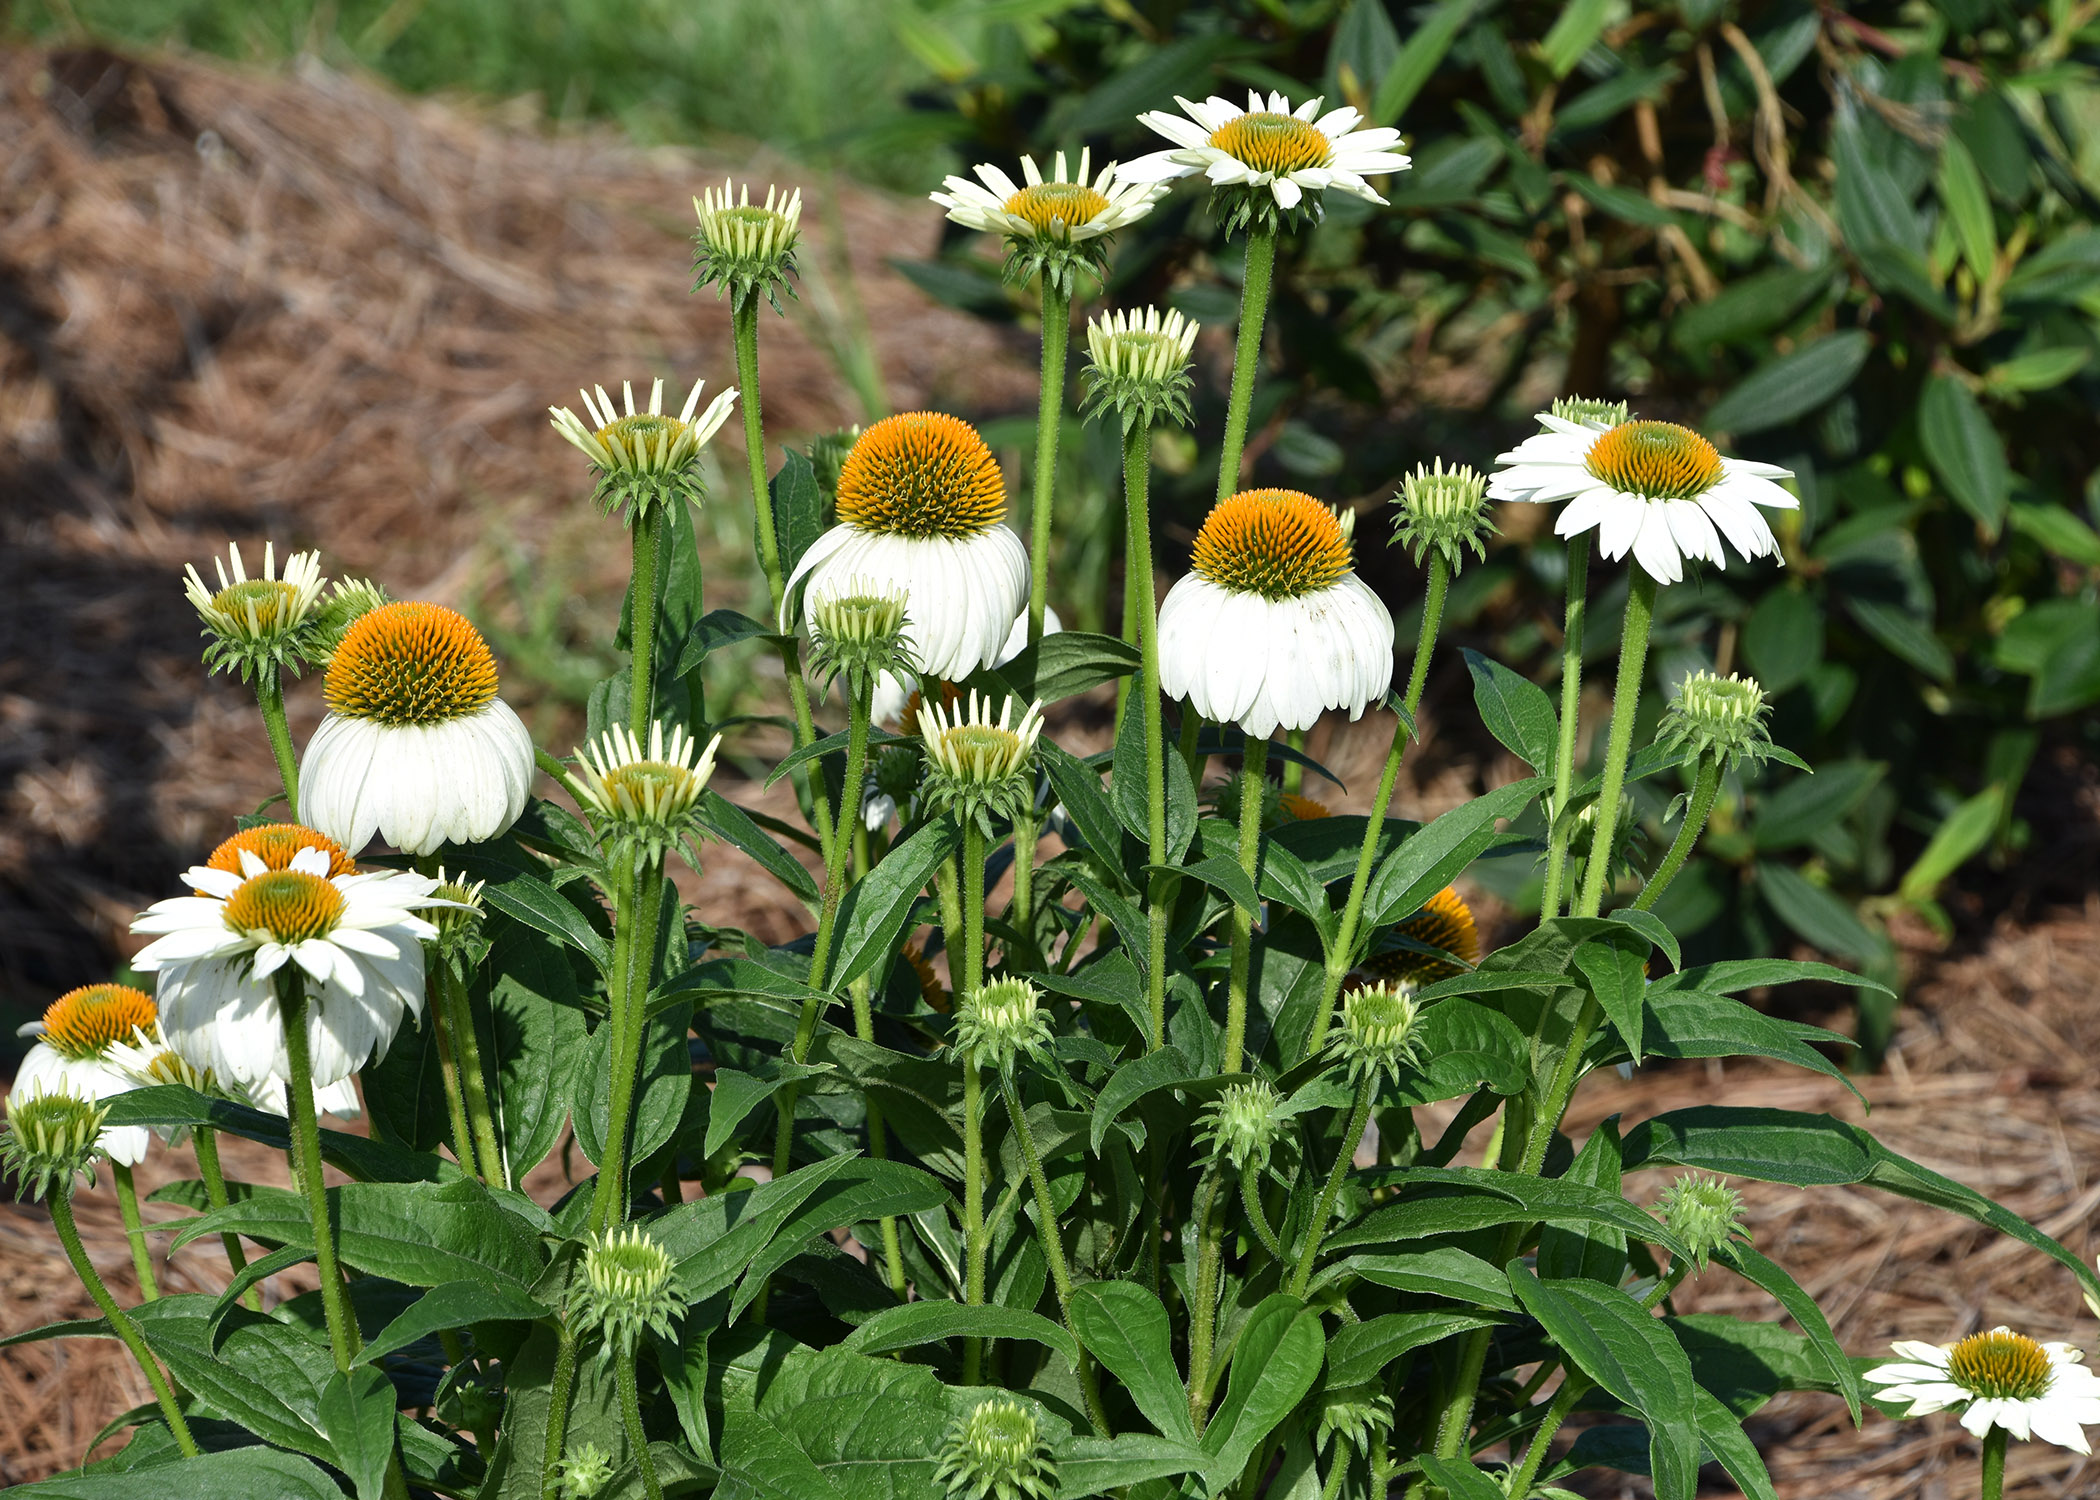 White Swan derives from an Echinacea Bravado seedling that produced white flowers. It is often paired with Bravado as a landscape combination. (Photo by Gary Bachman/MSU Extension Service)